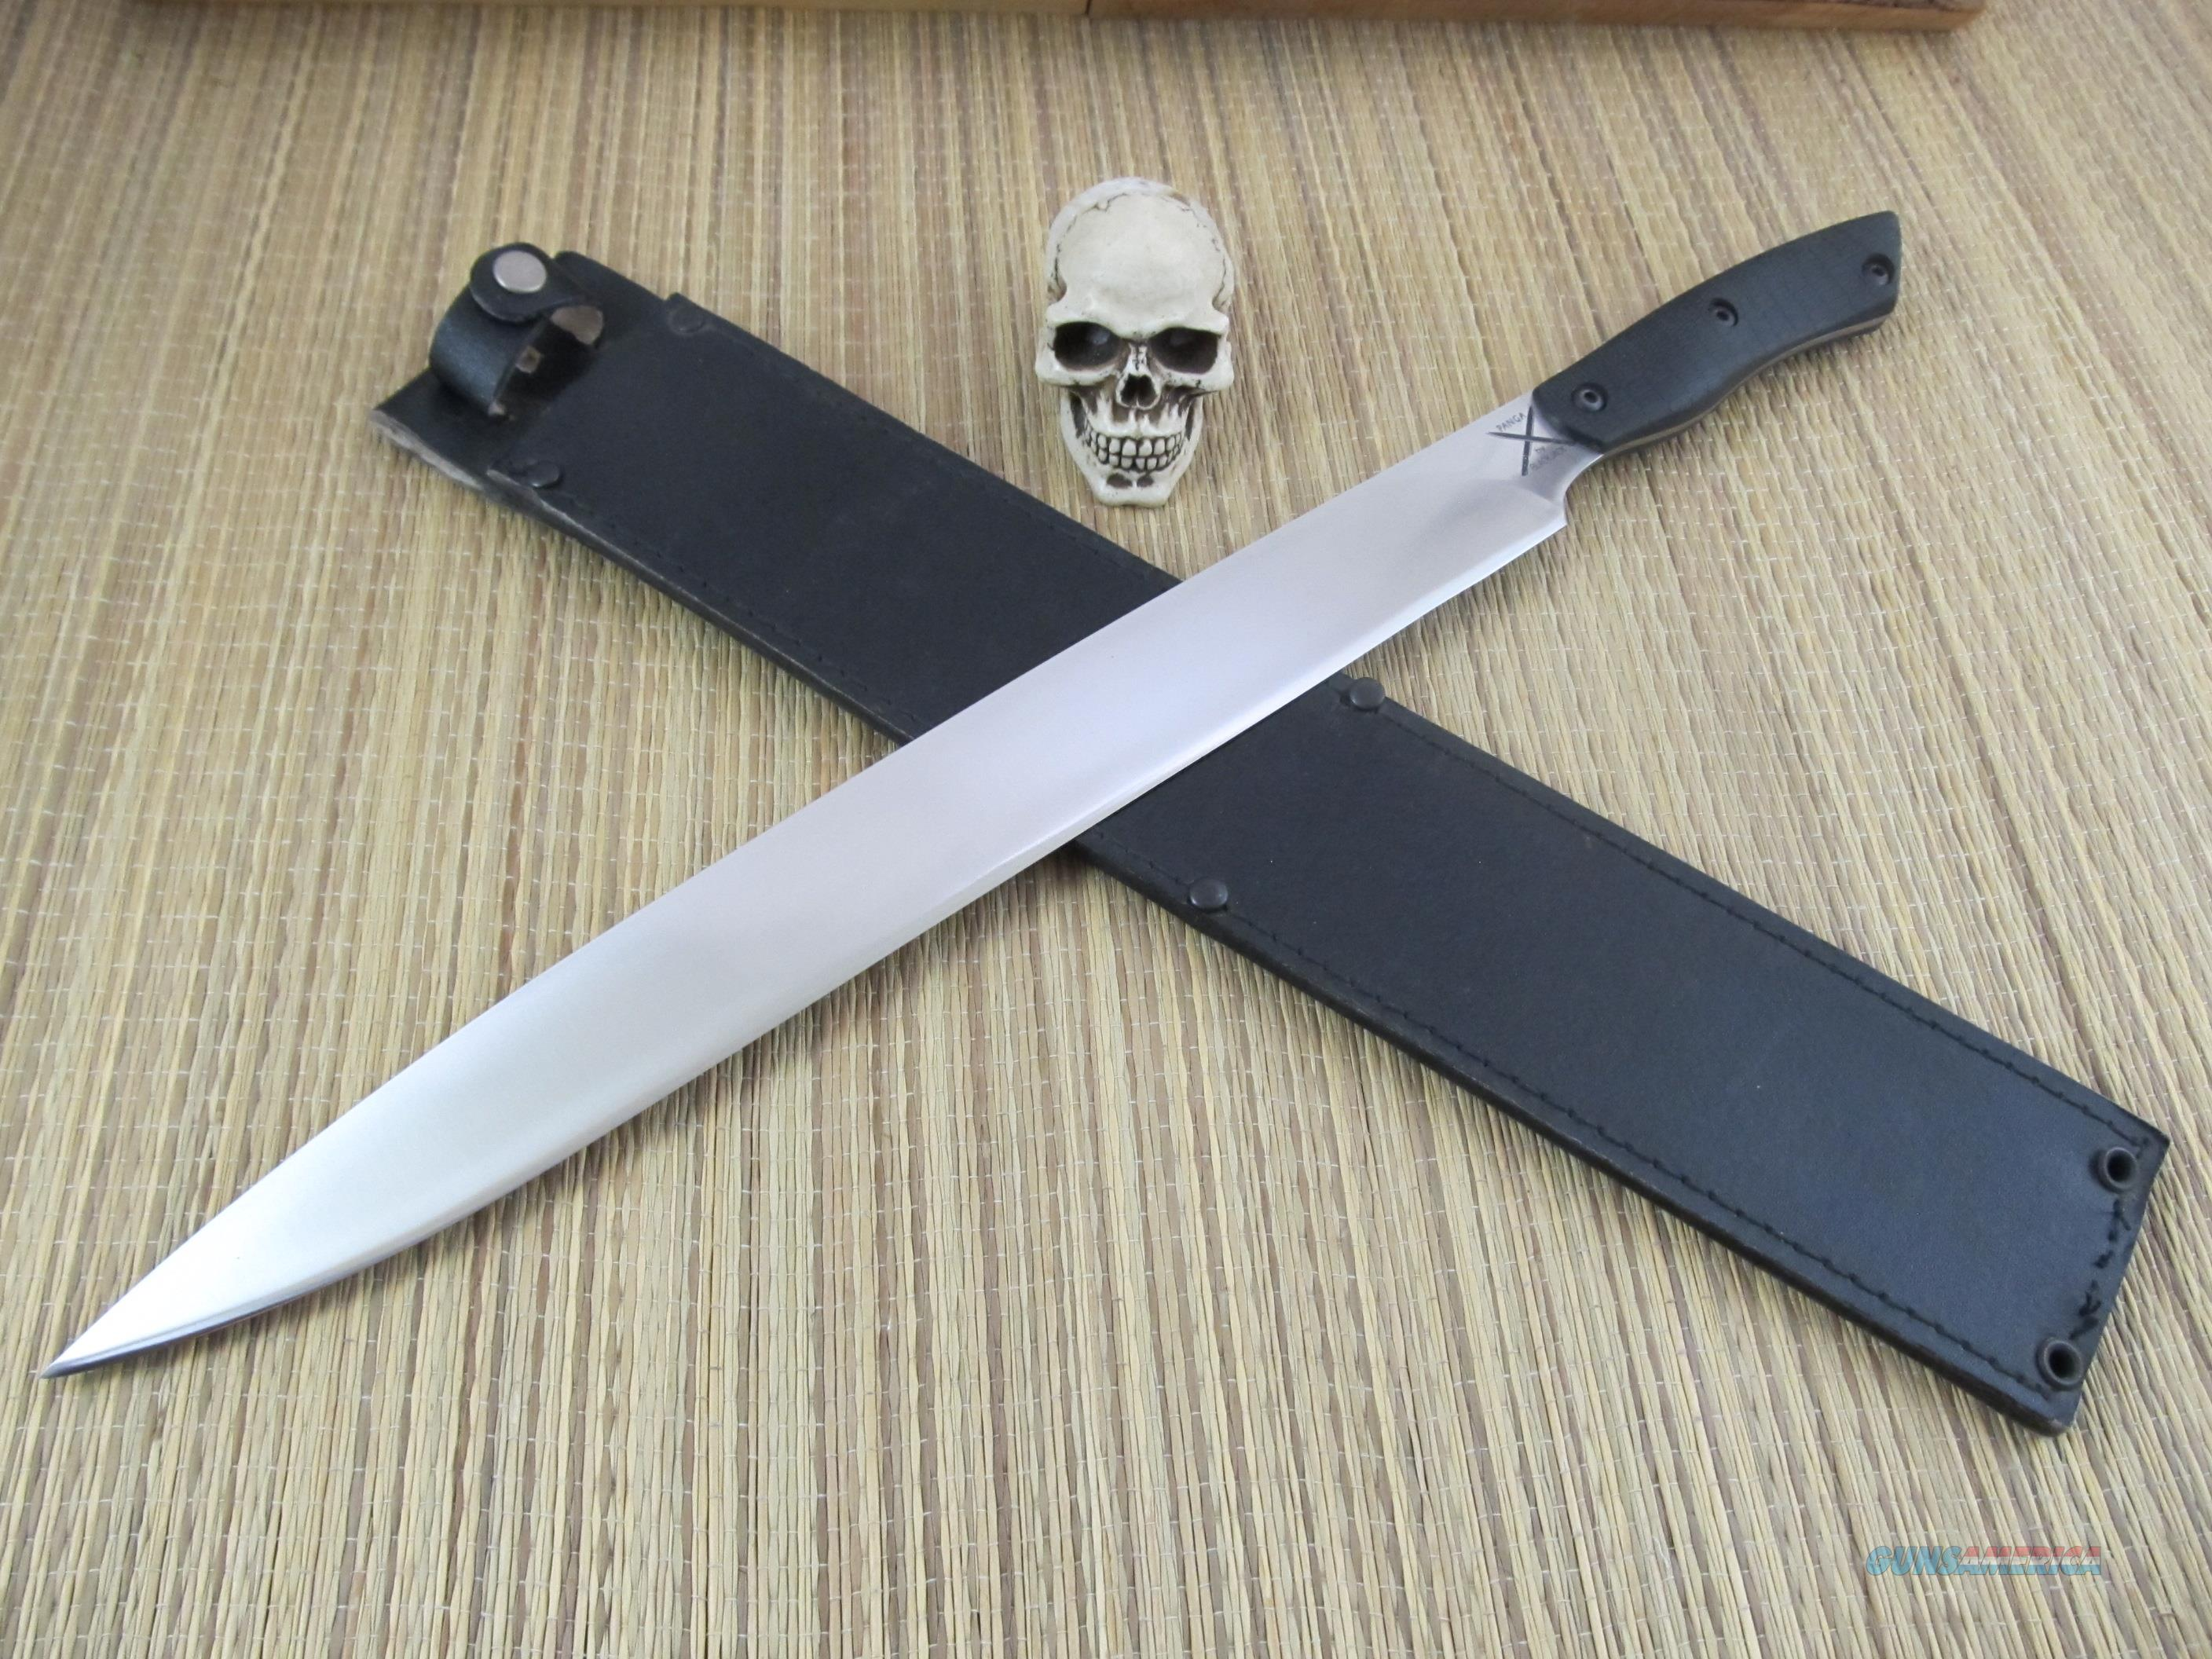 Blackjack knives for sale